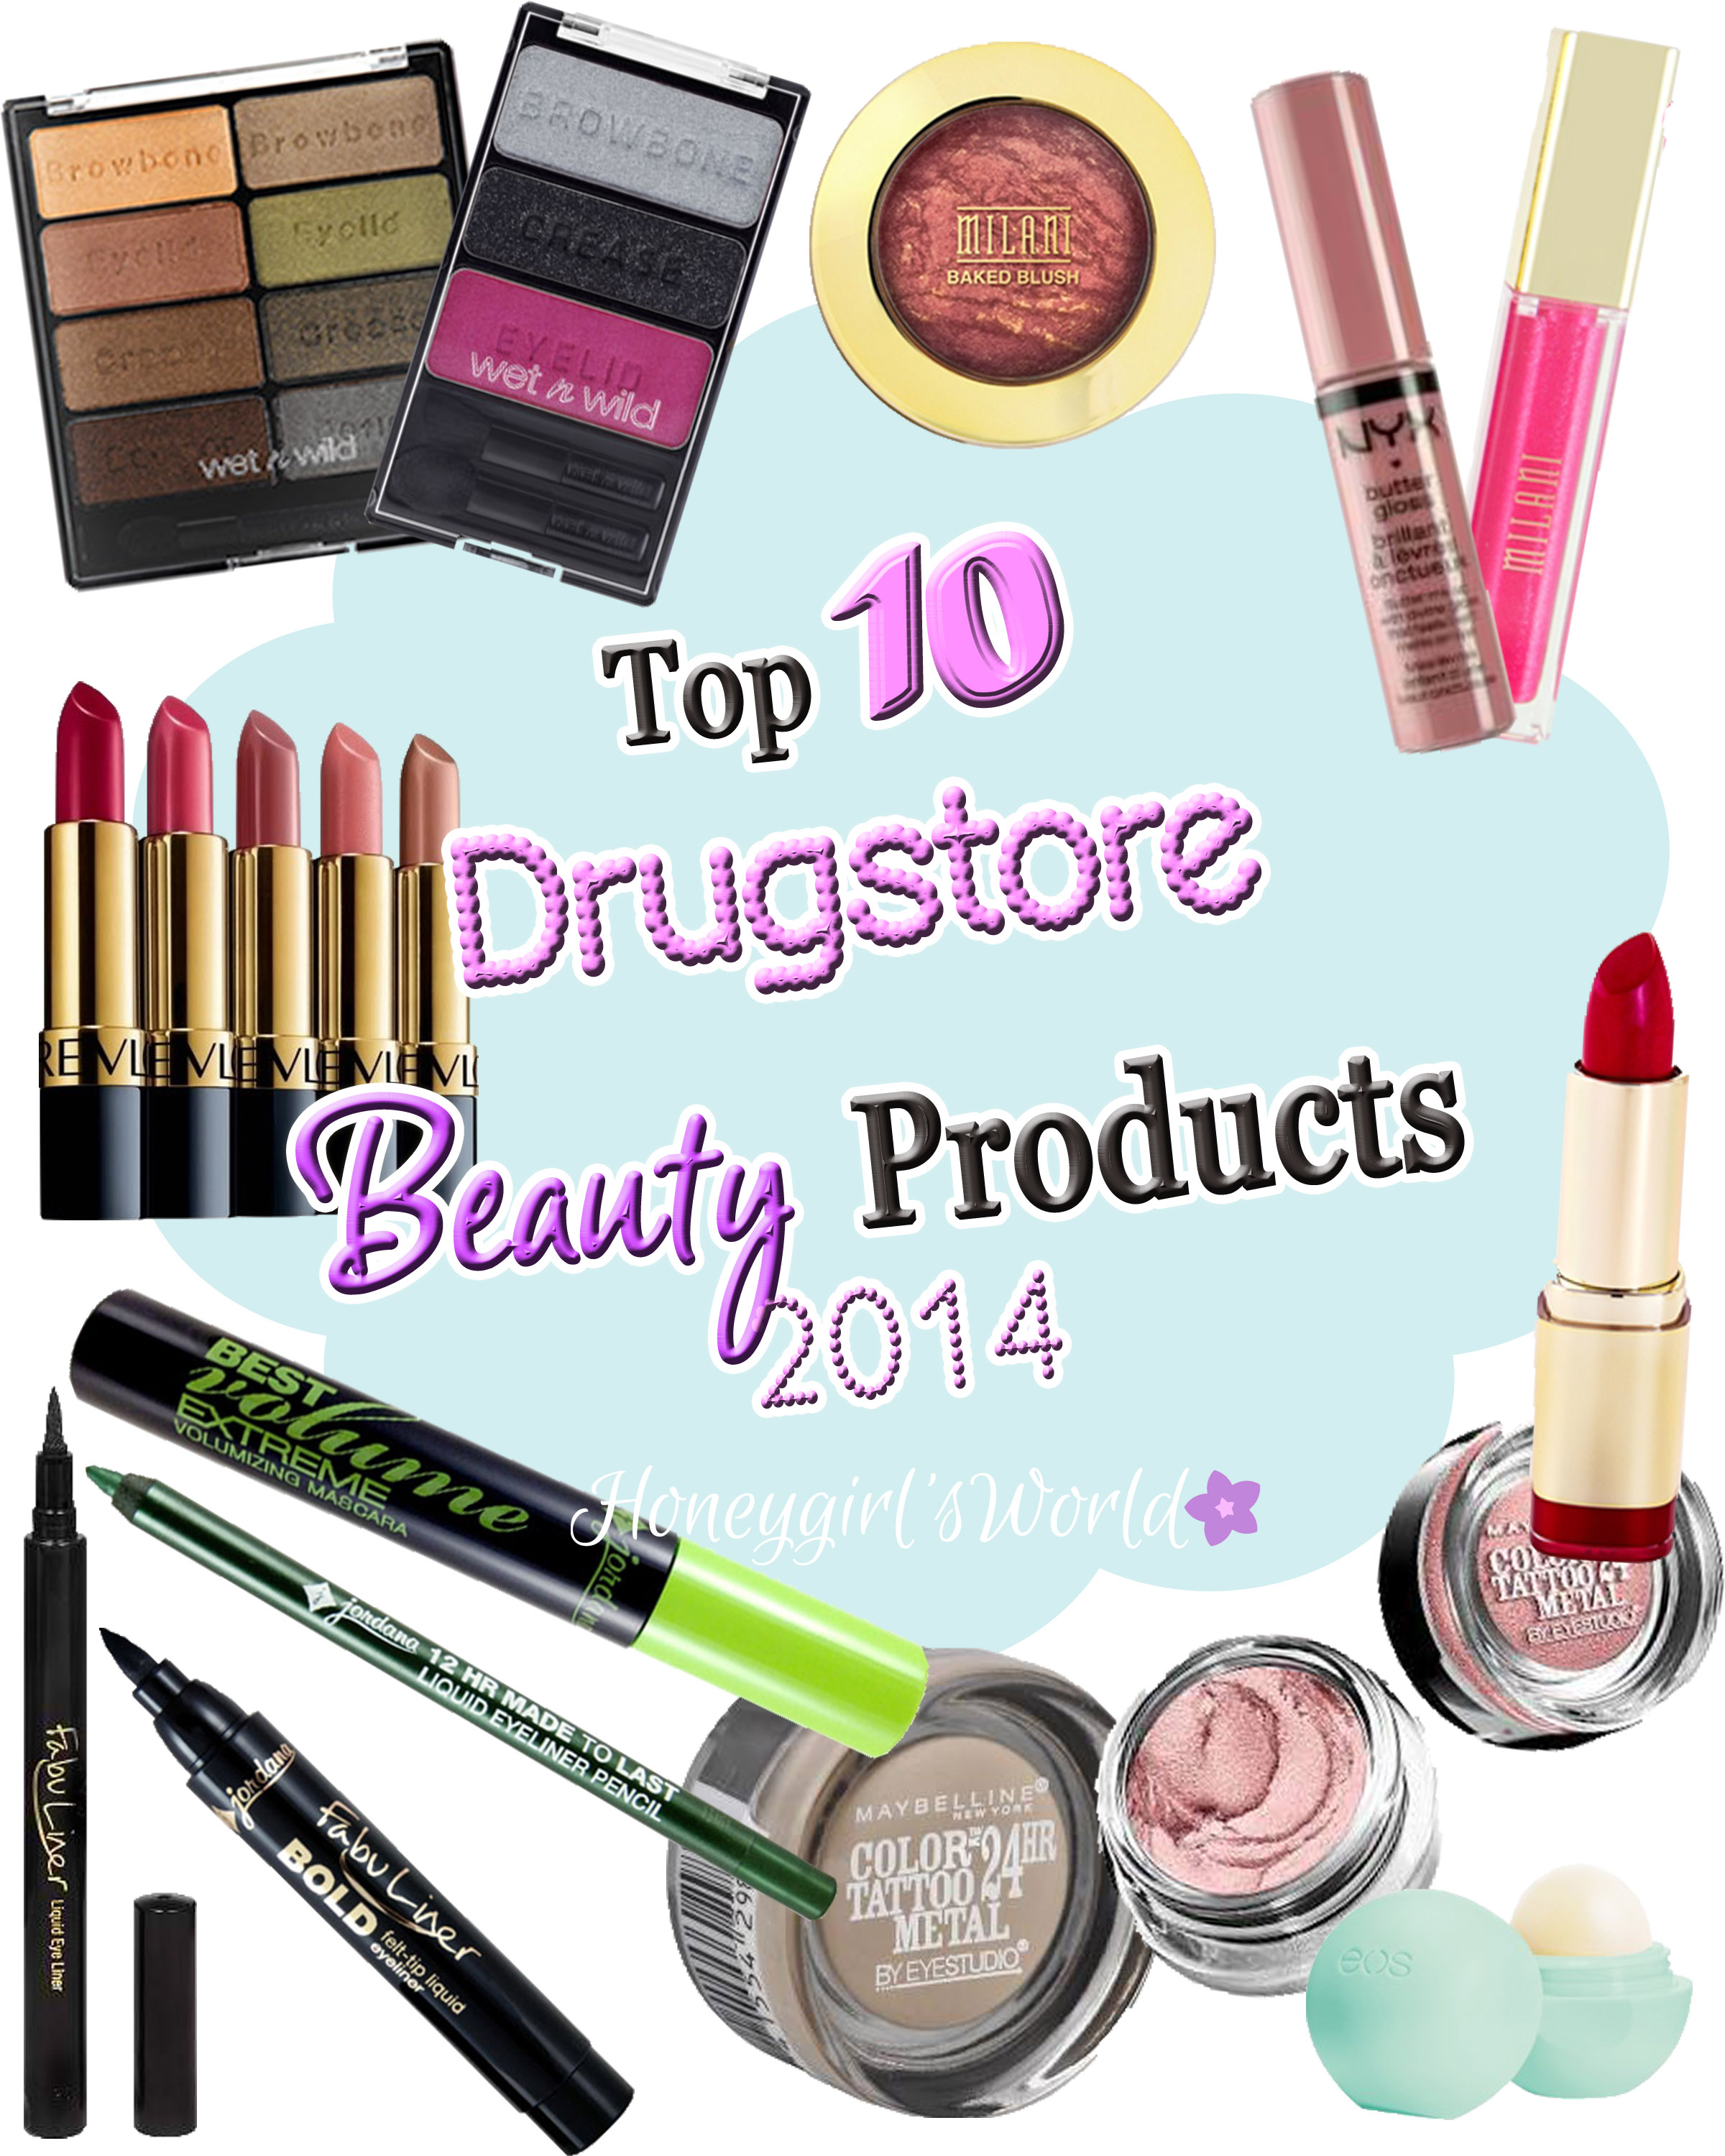 Top 10 Drugstore Beauty Products 2014